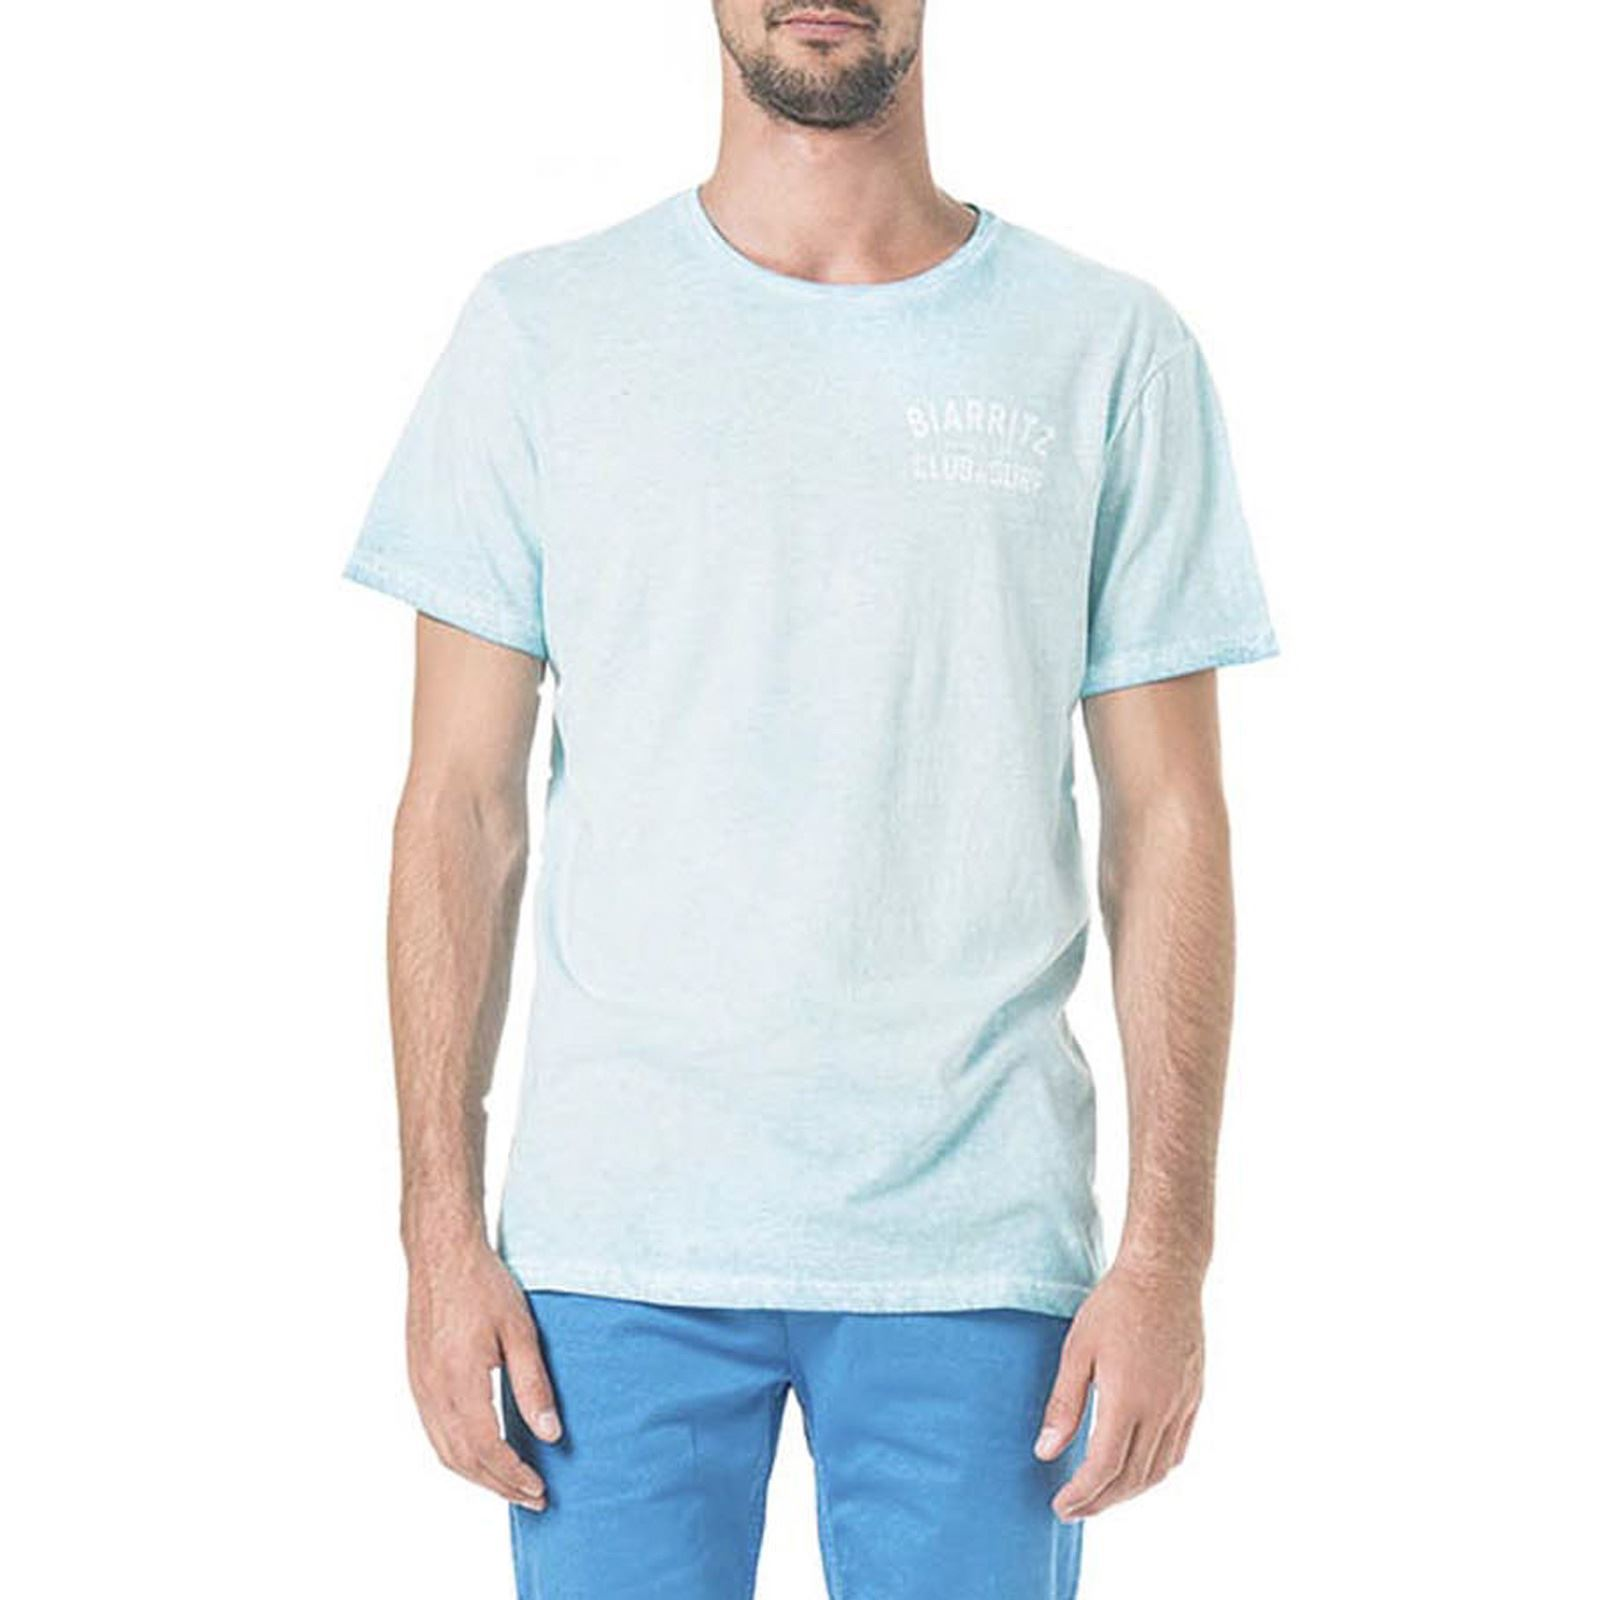 Mountain shirt Best Homme CourtesTurquoise Manches T V Lj54Ac3Rq